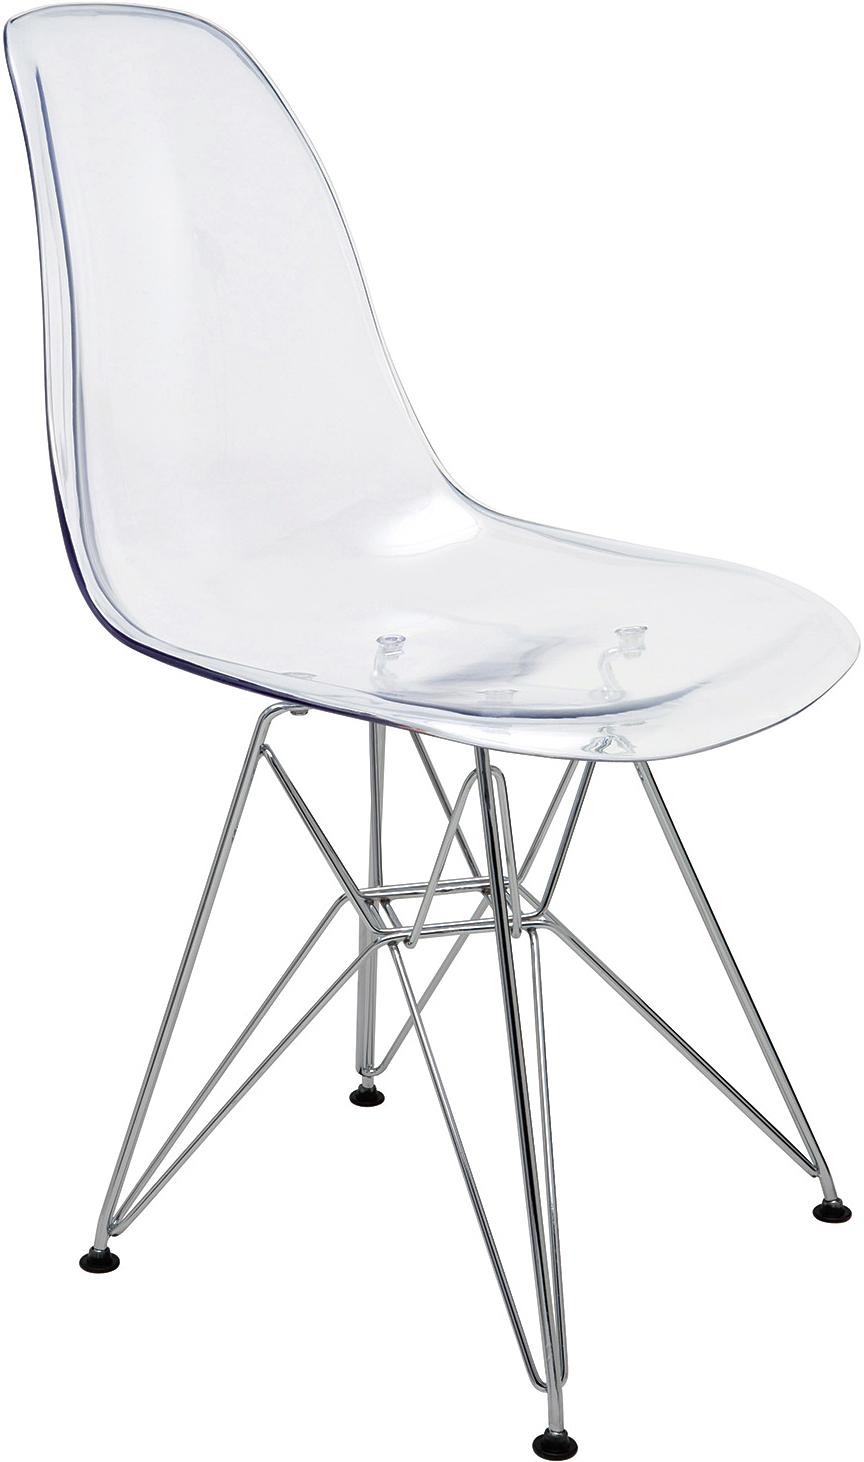 mid century inspired polycarbonate chairs